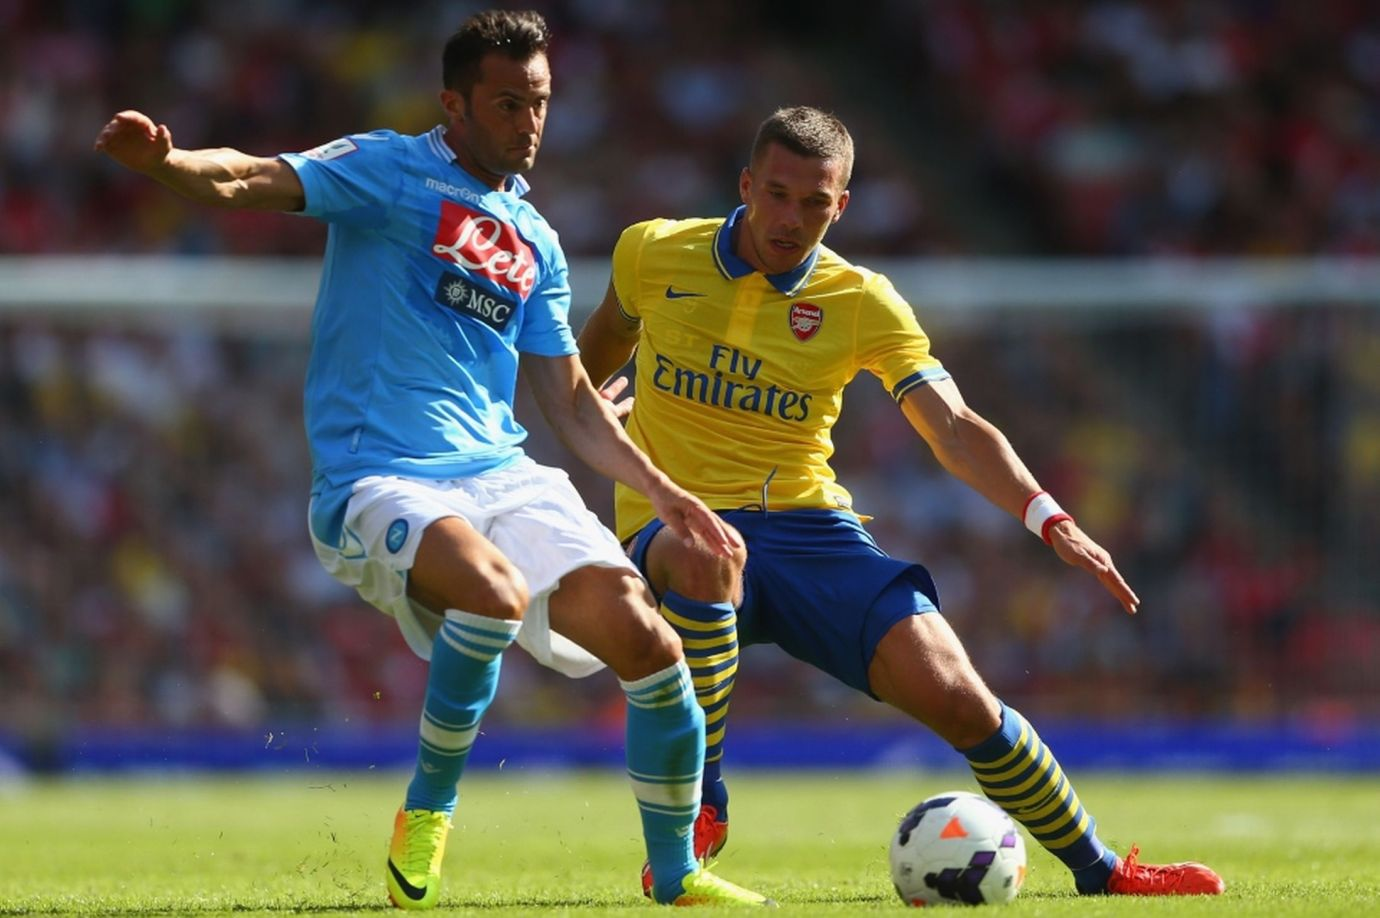 Arsenal-v-Napoli-Emirates-Cup-2121192 (1)